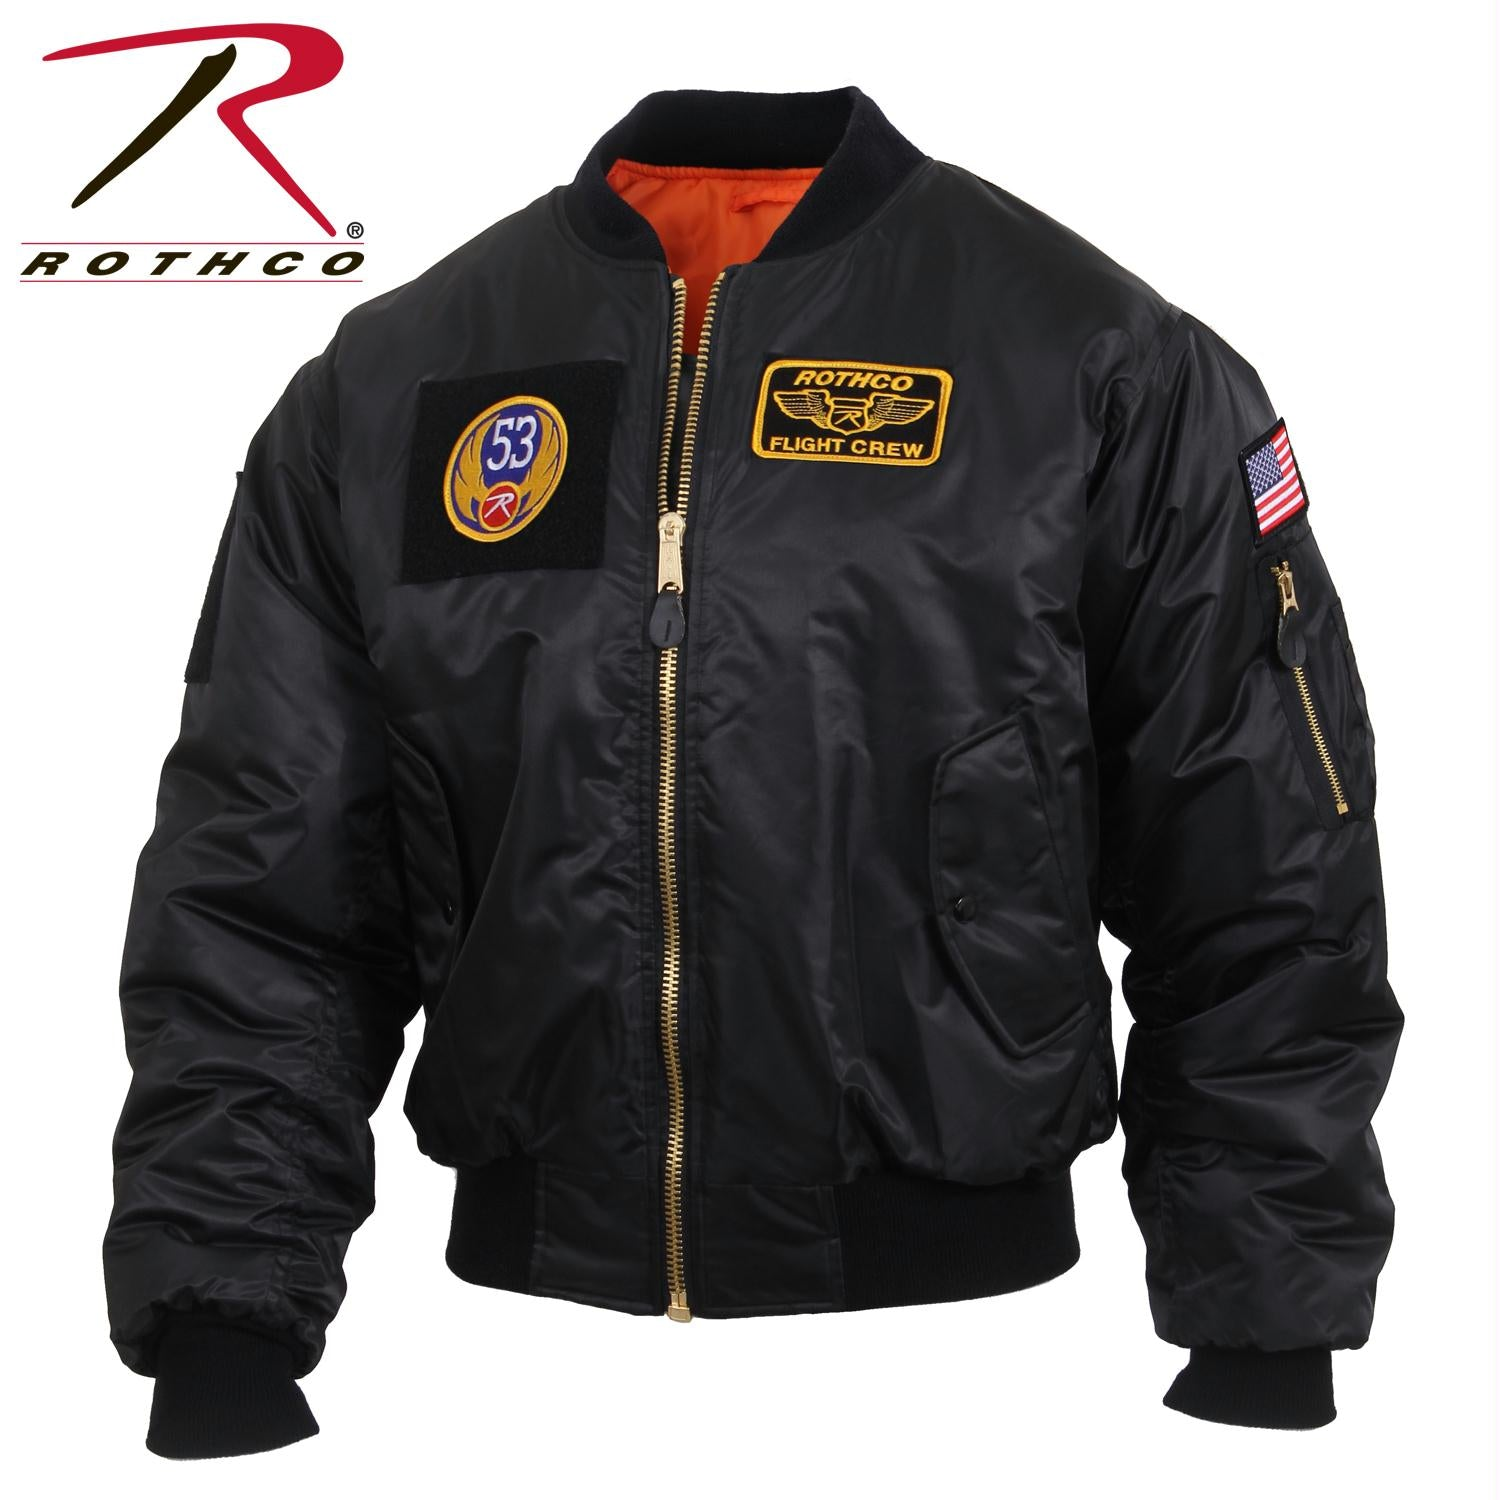 Rothco MA-1 Flight Jacket with Patches - Black / XL